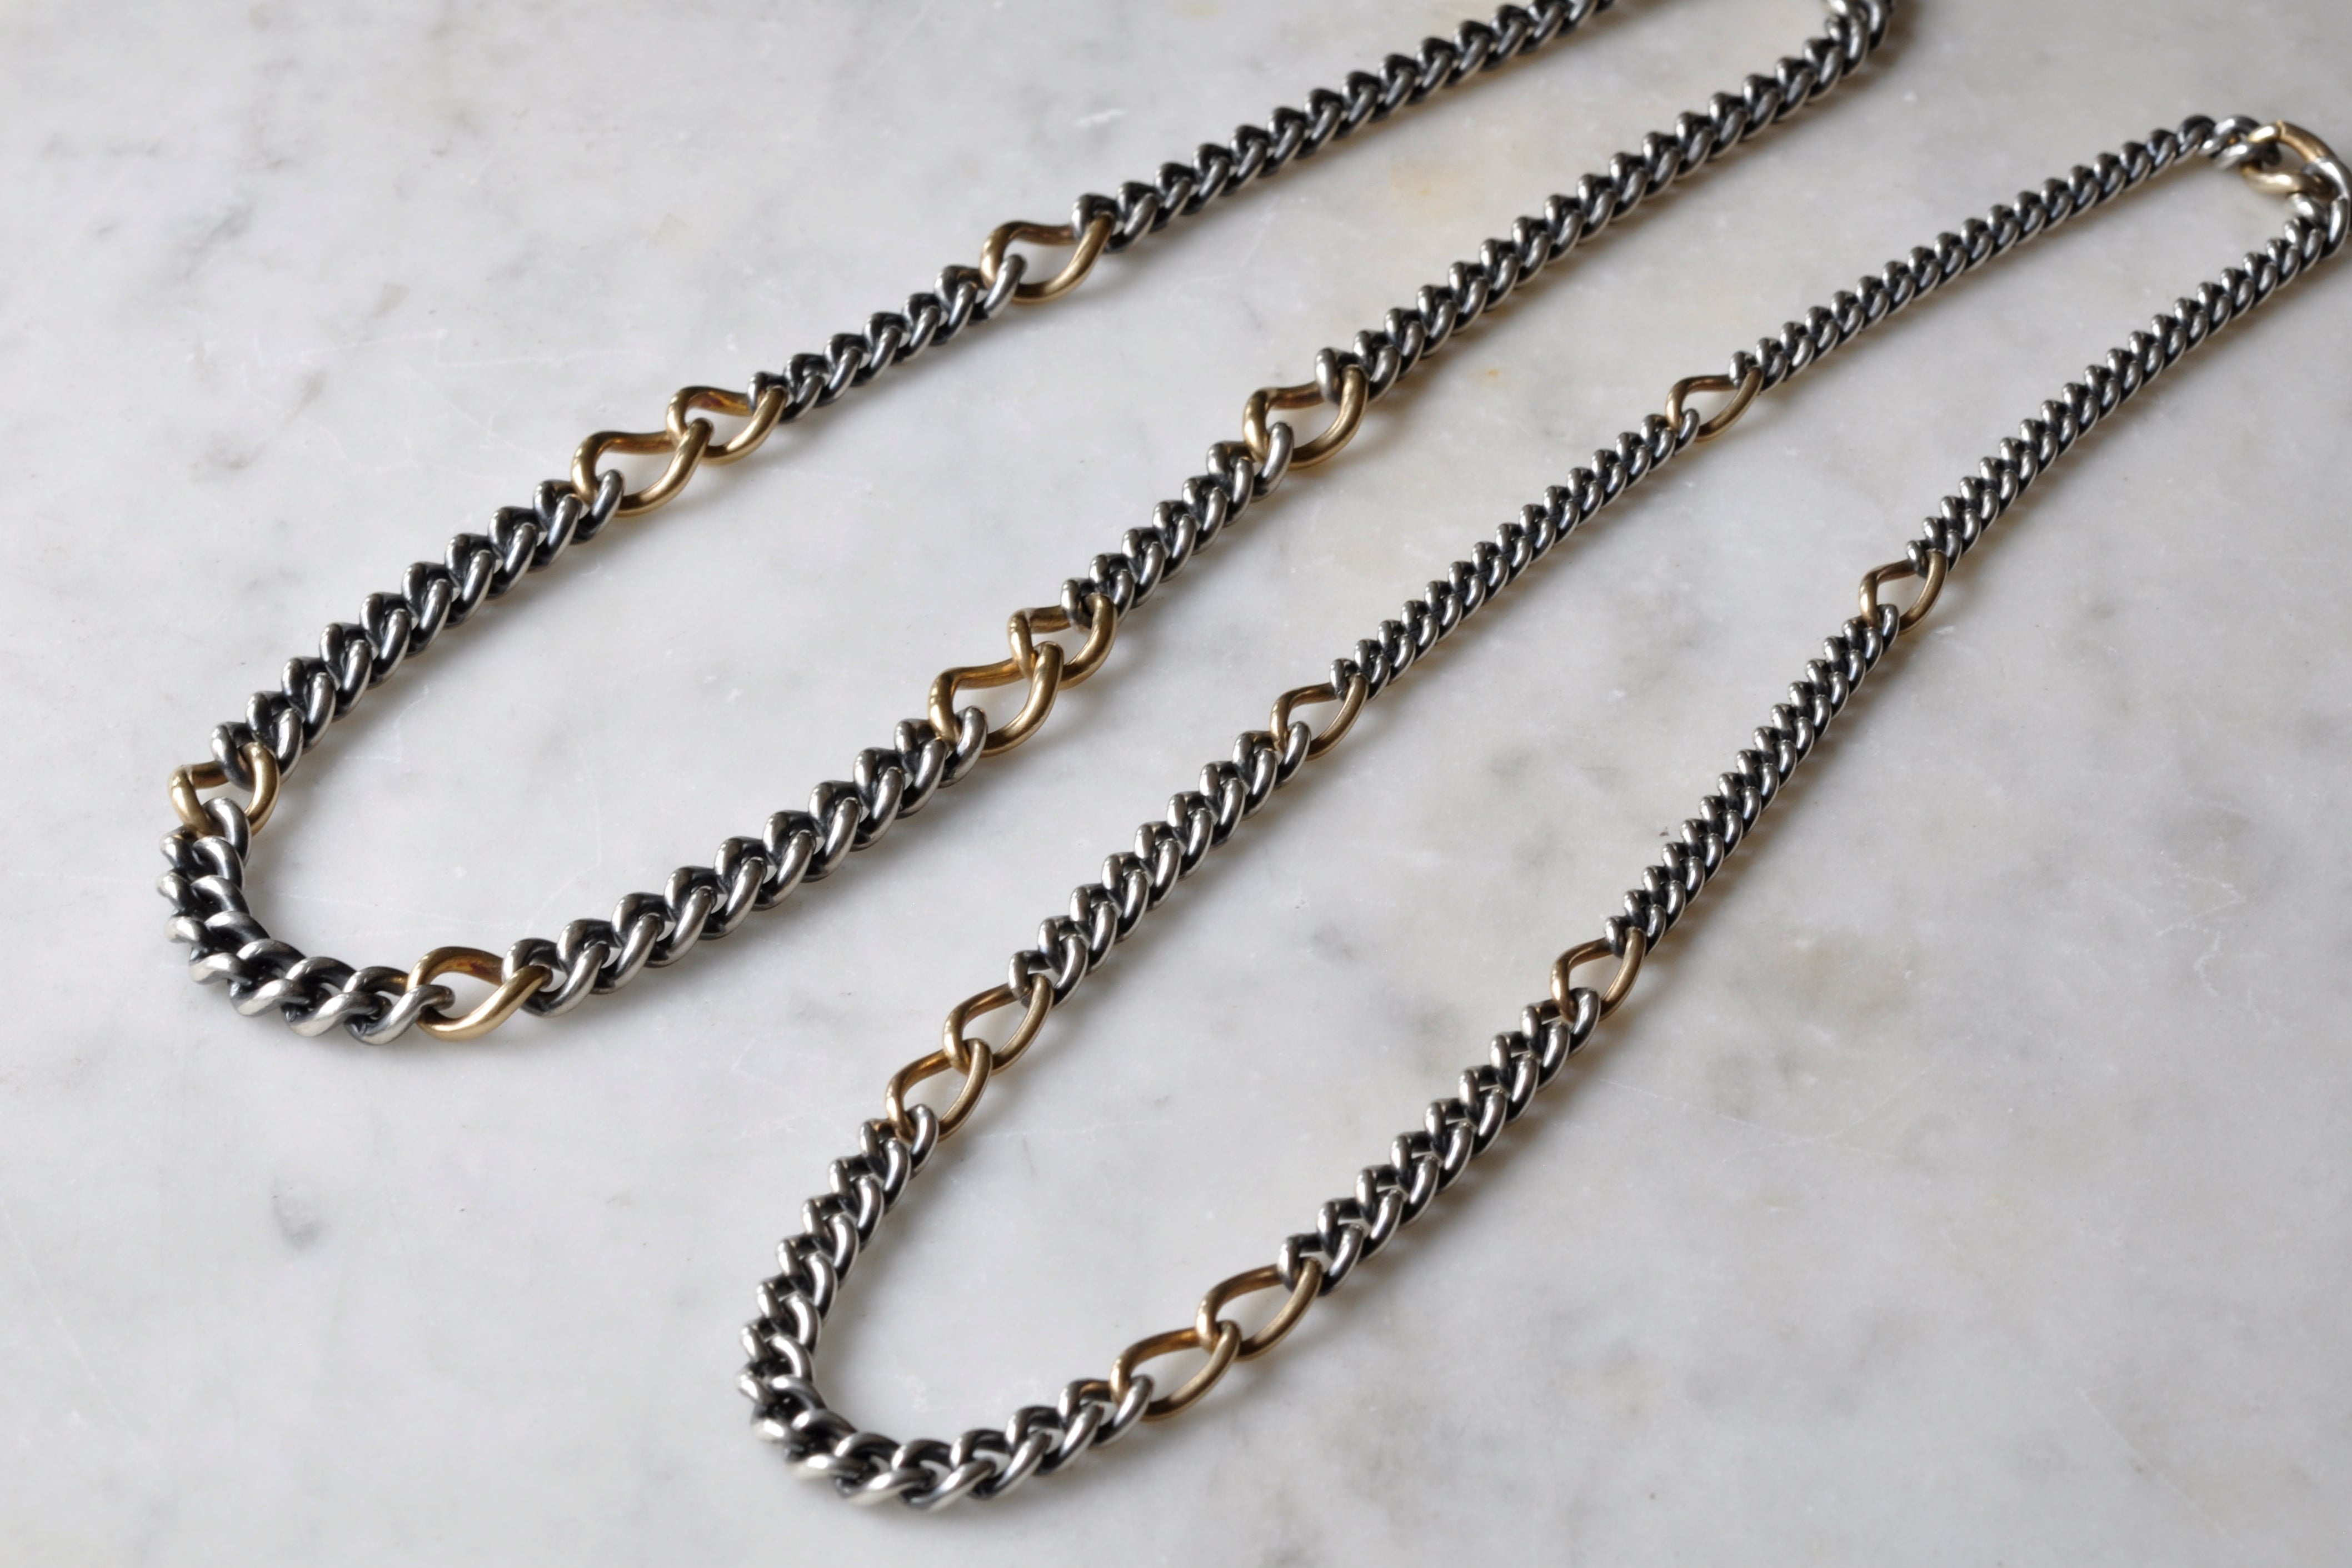 【受注生産】Humete Gradation Chain Necklace